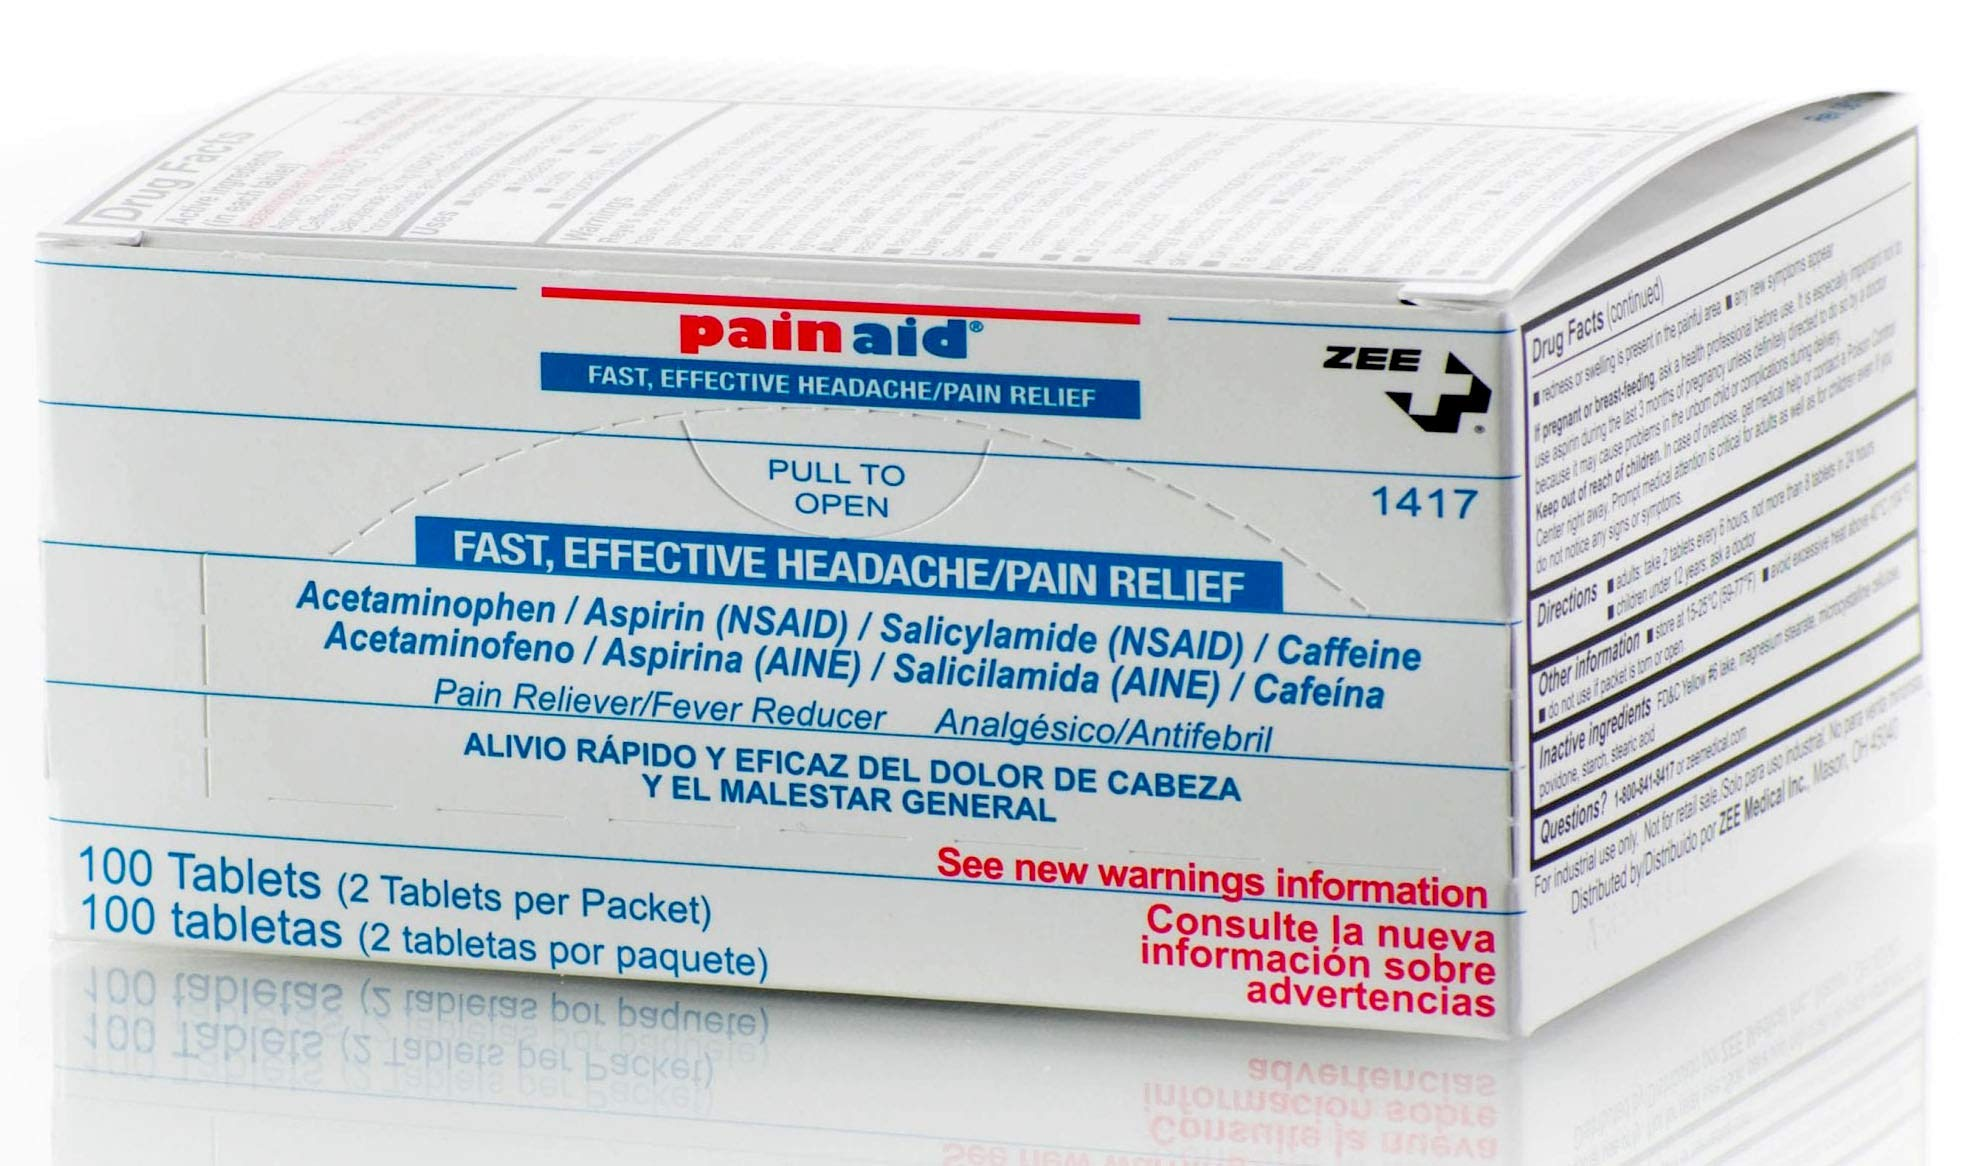 PainAid - Pain Relief - Refill Box - 100 Tablets by LERAMED